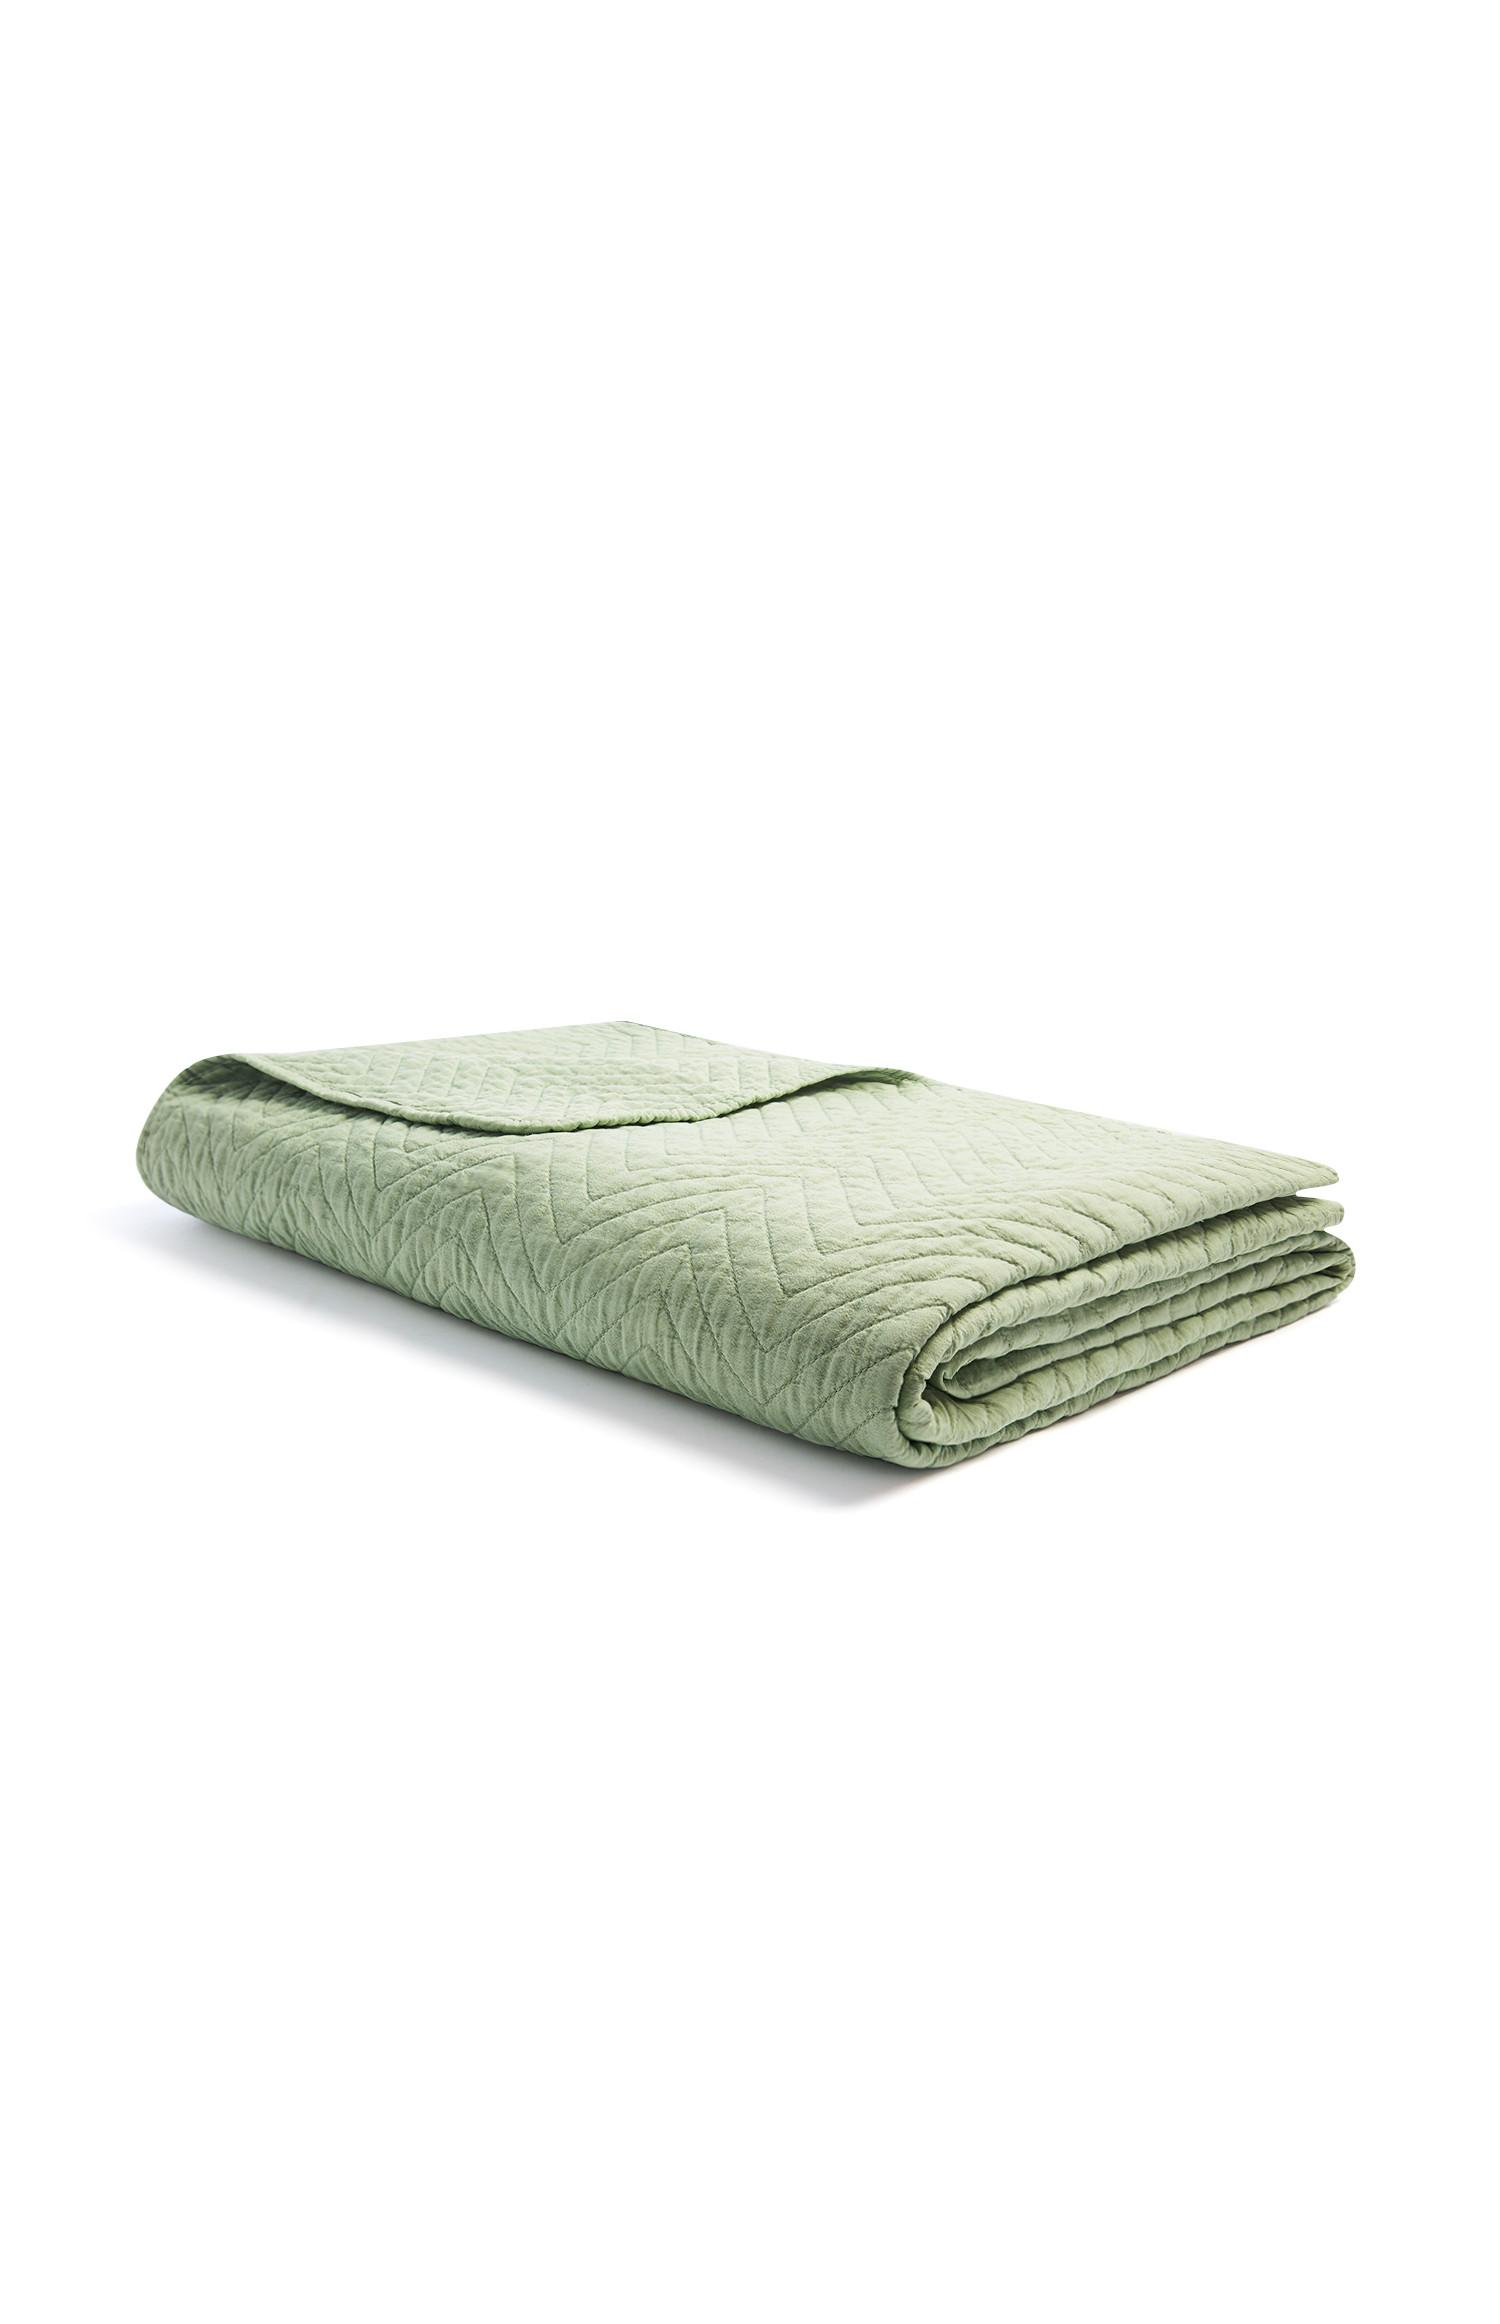 Green Quilted Throw